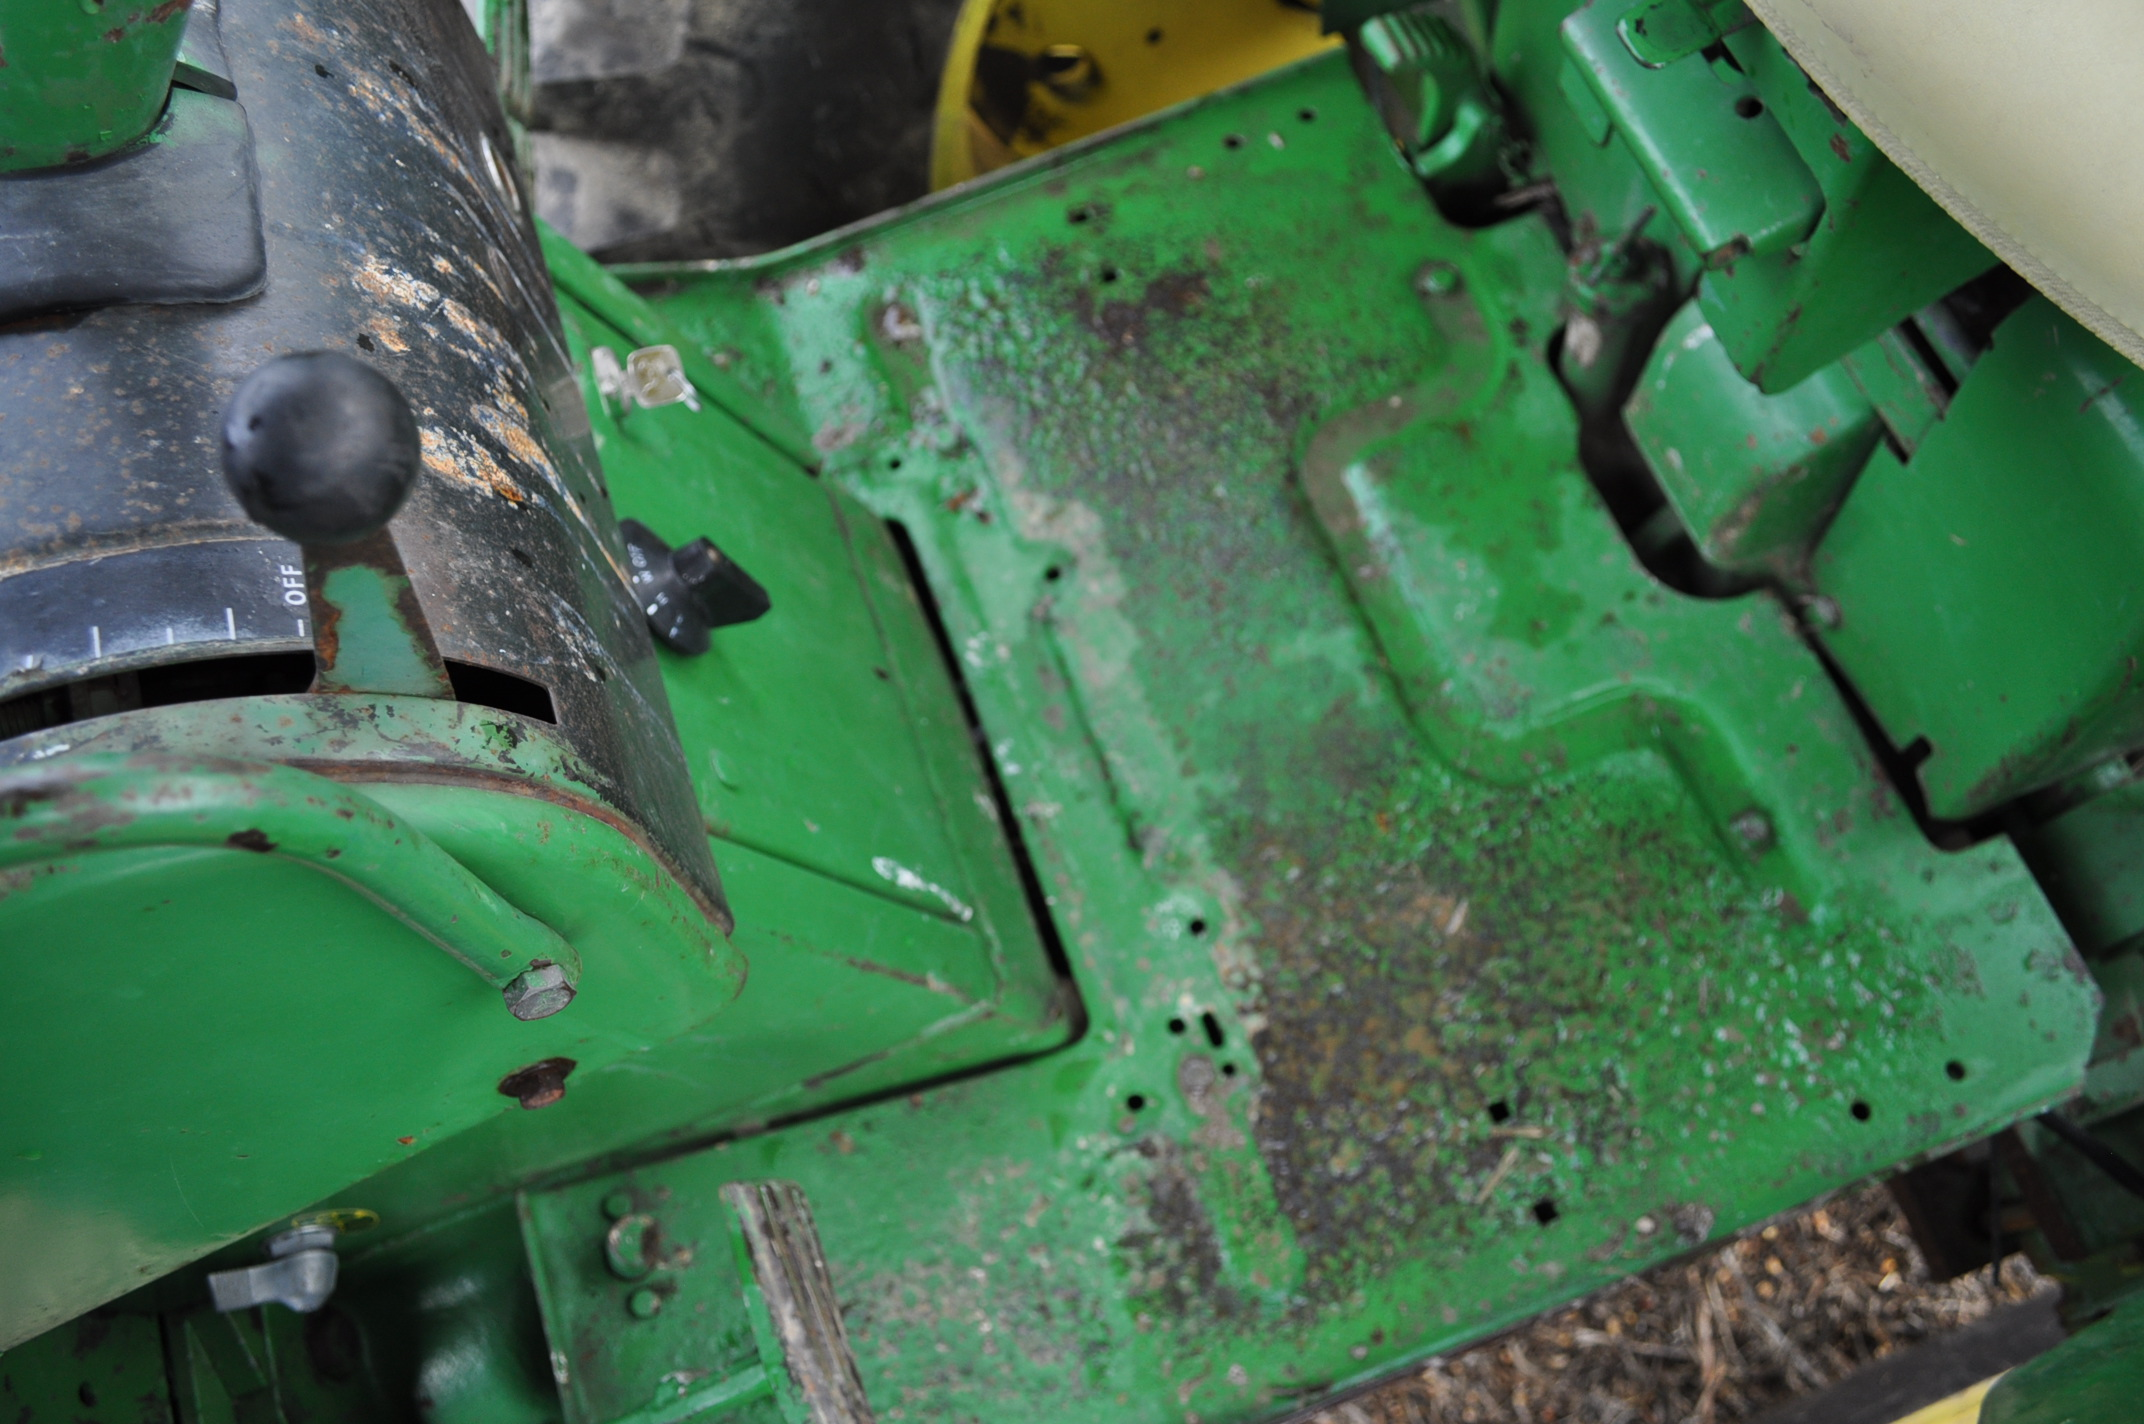 John Deere 4320 tractor, diesel, 18.4-38 duals, 10.00-16 wide front, Syncro, 2 hyd remotes, 540/1000 - Image 20 of 20